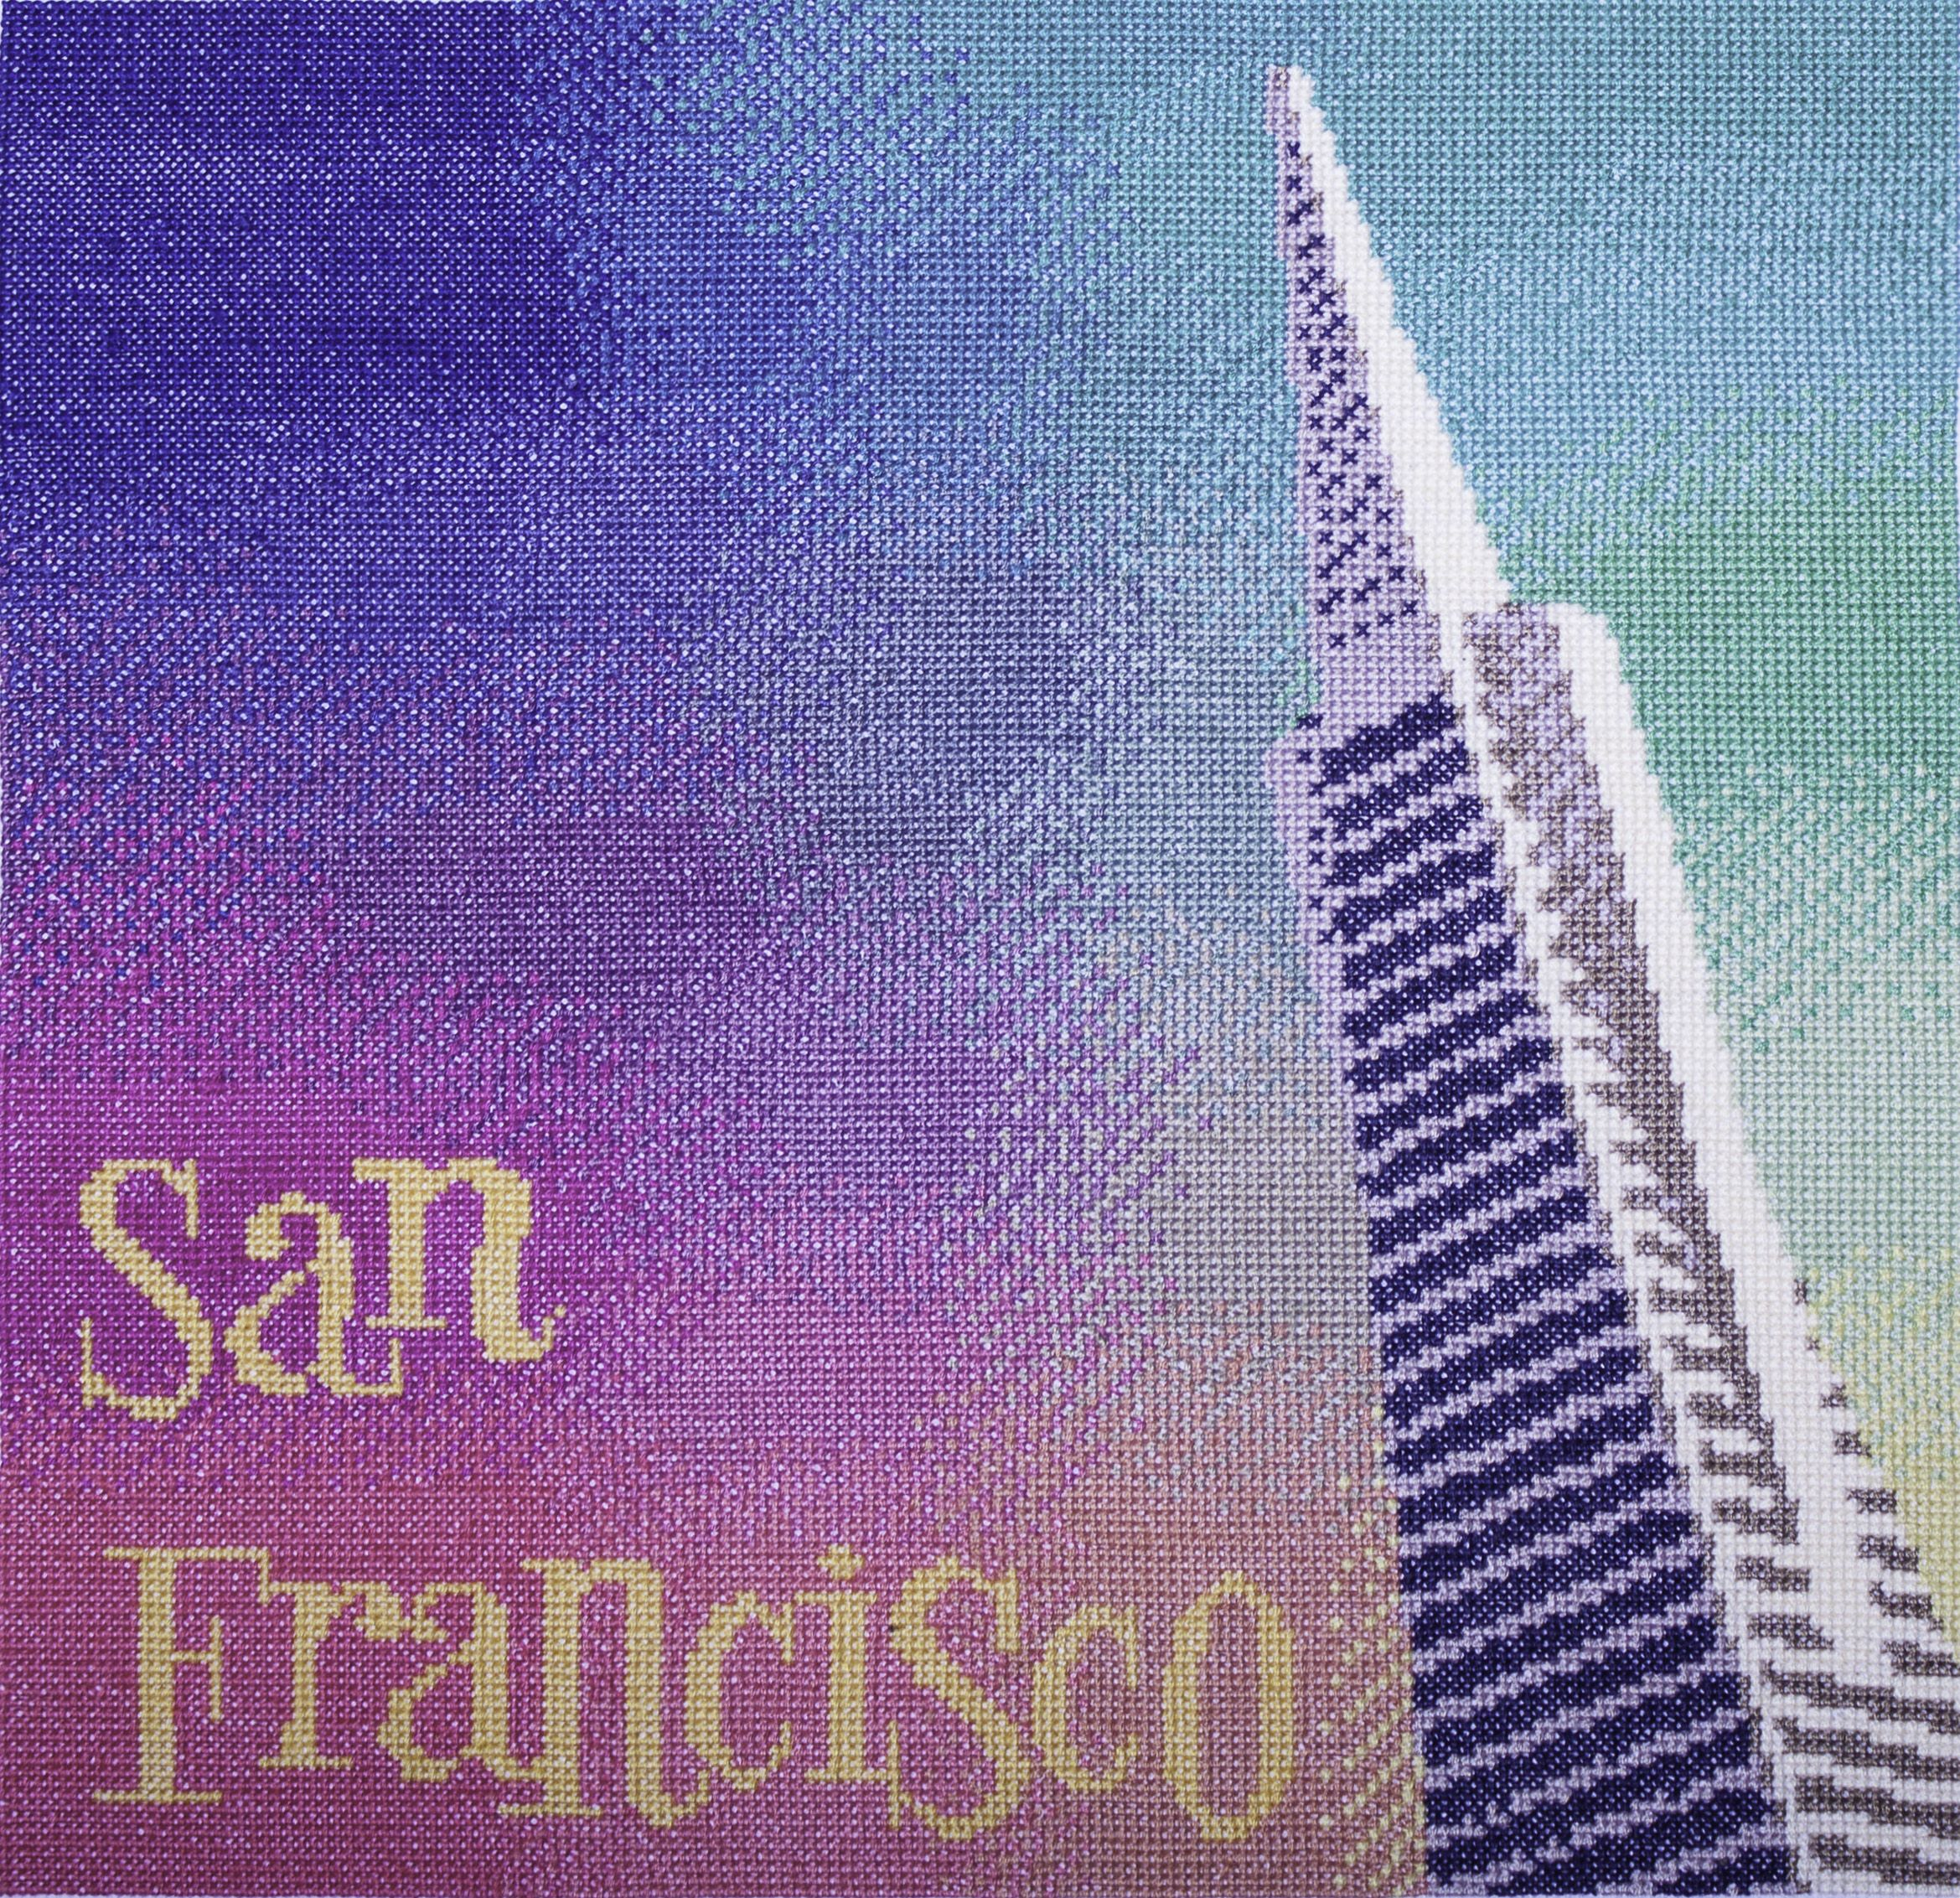 Colourful 14 count cross stitch kit capturing the vibrancy of San Francisco